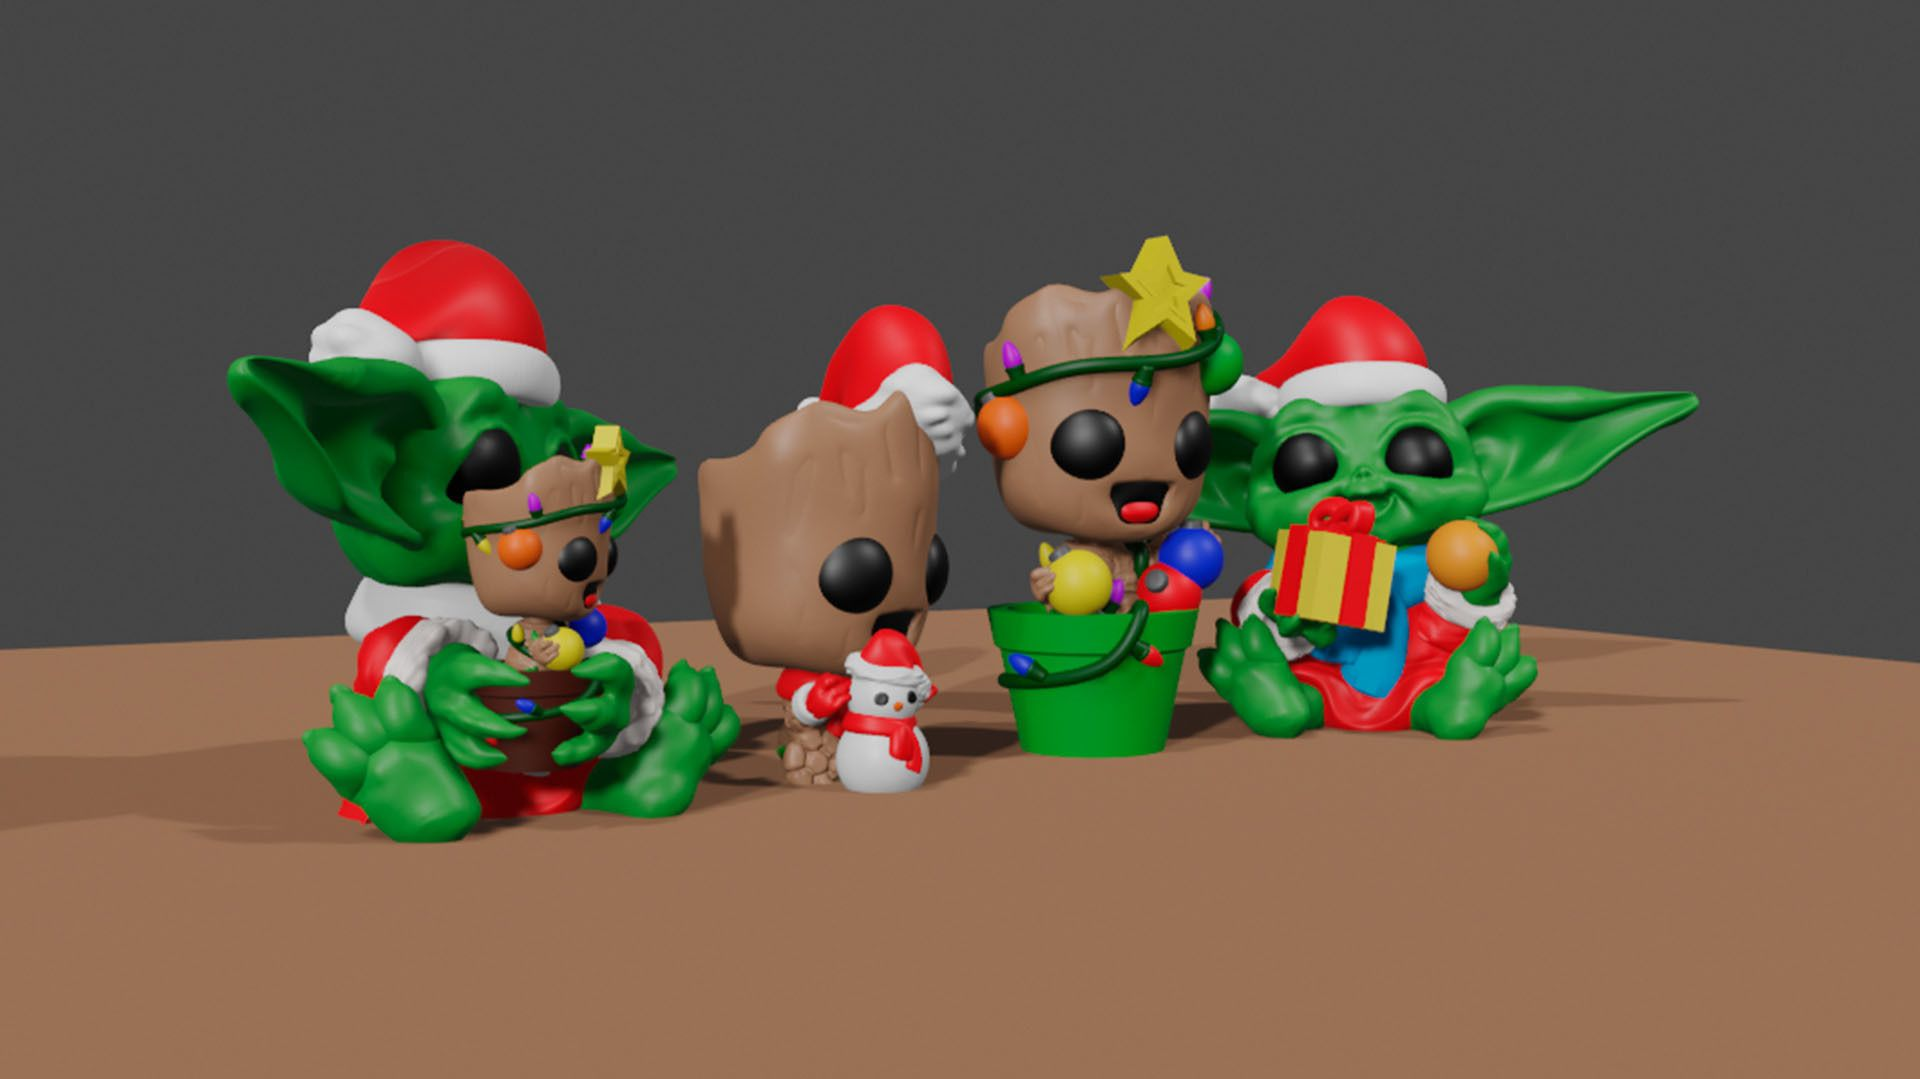 Baby Groot Baby Yoda All 03.jpg Download STL file Baby Groot Pot and Baby Yoda Christmas • Object to 3D print, Markdejavu